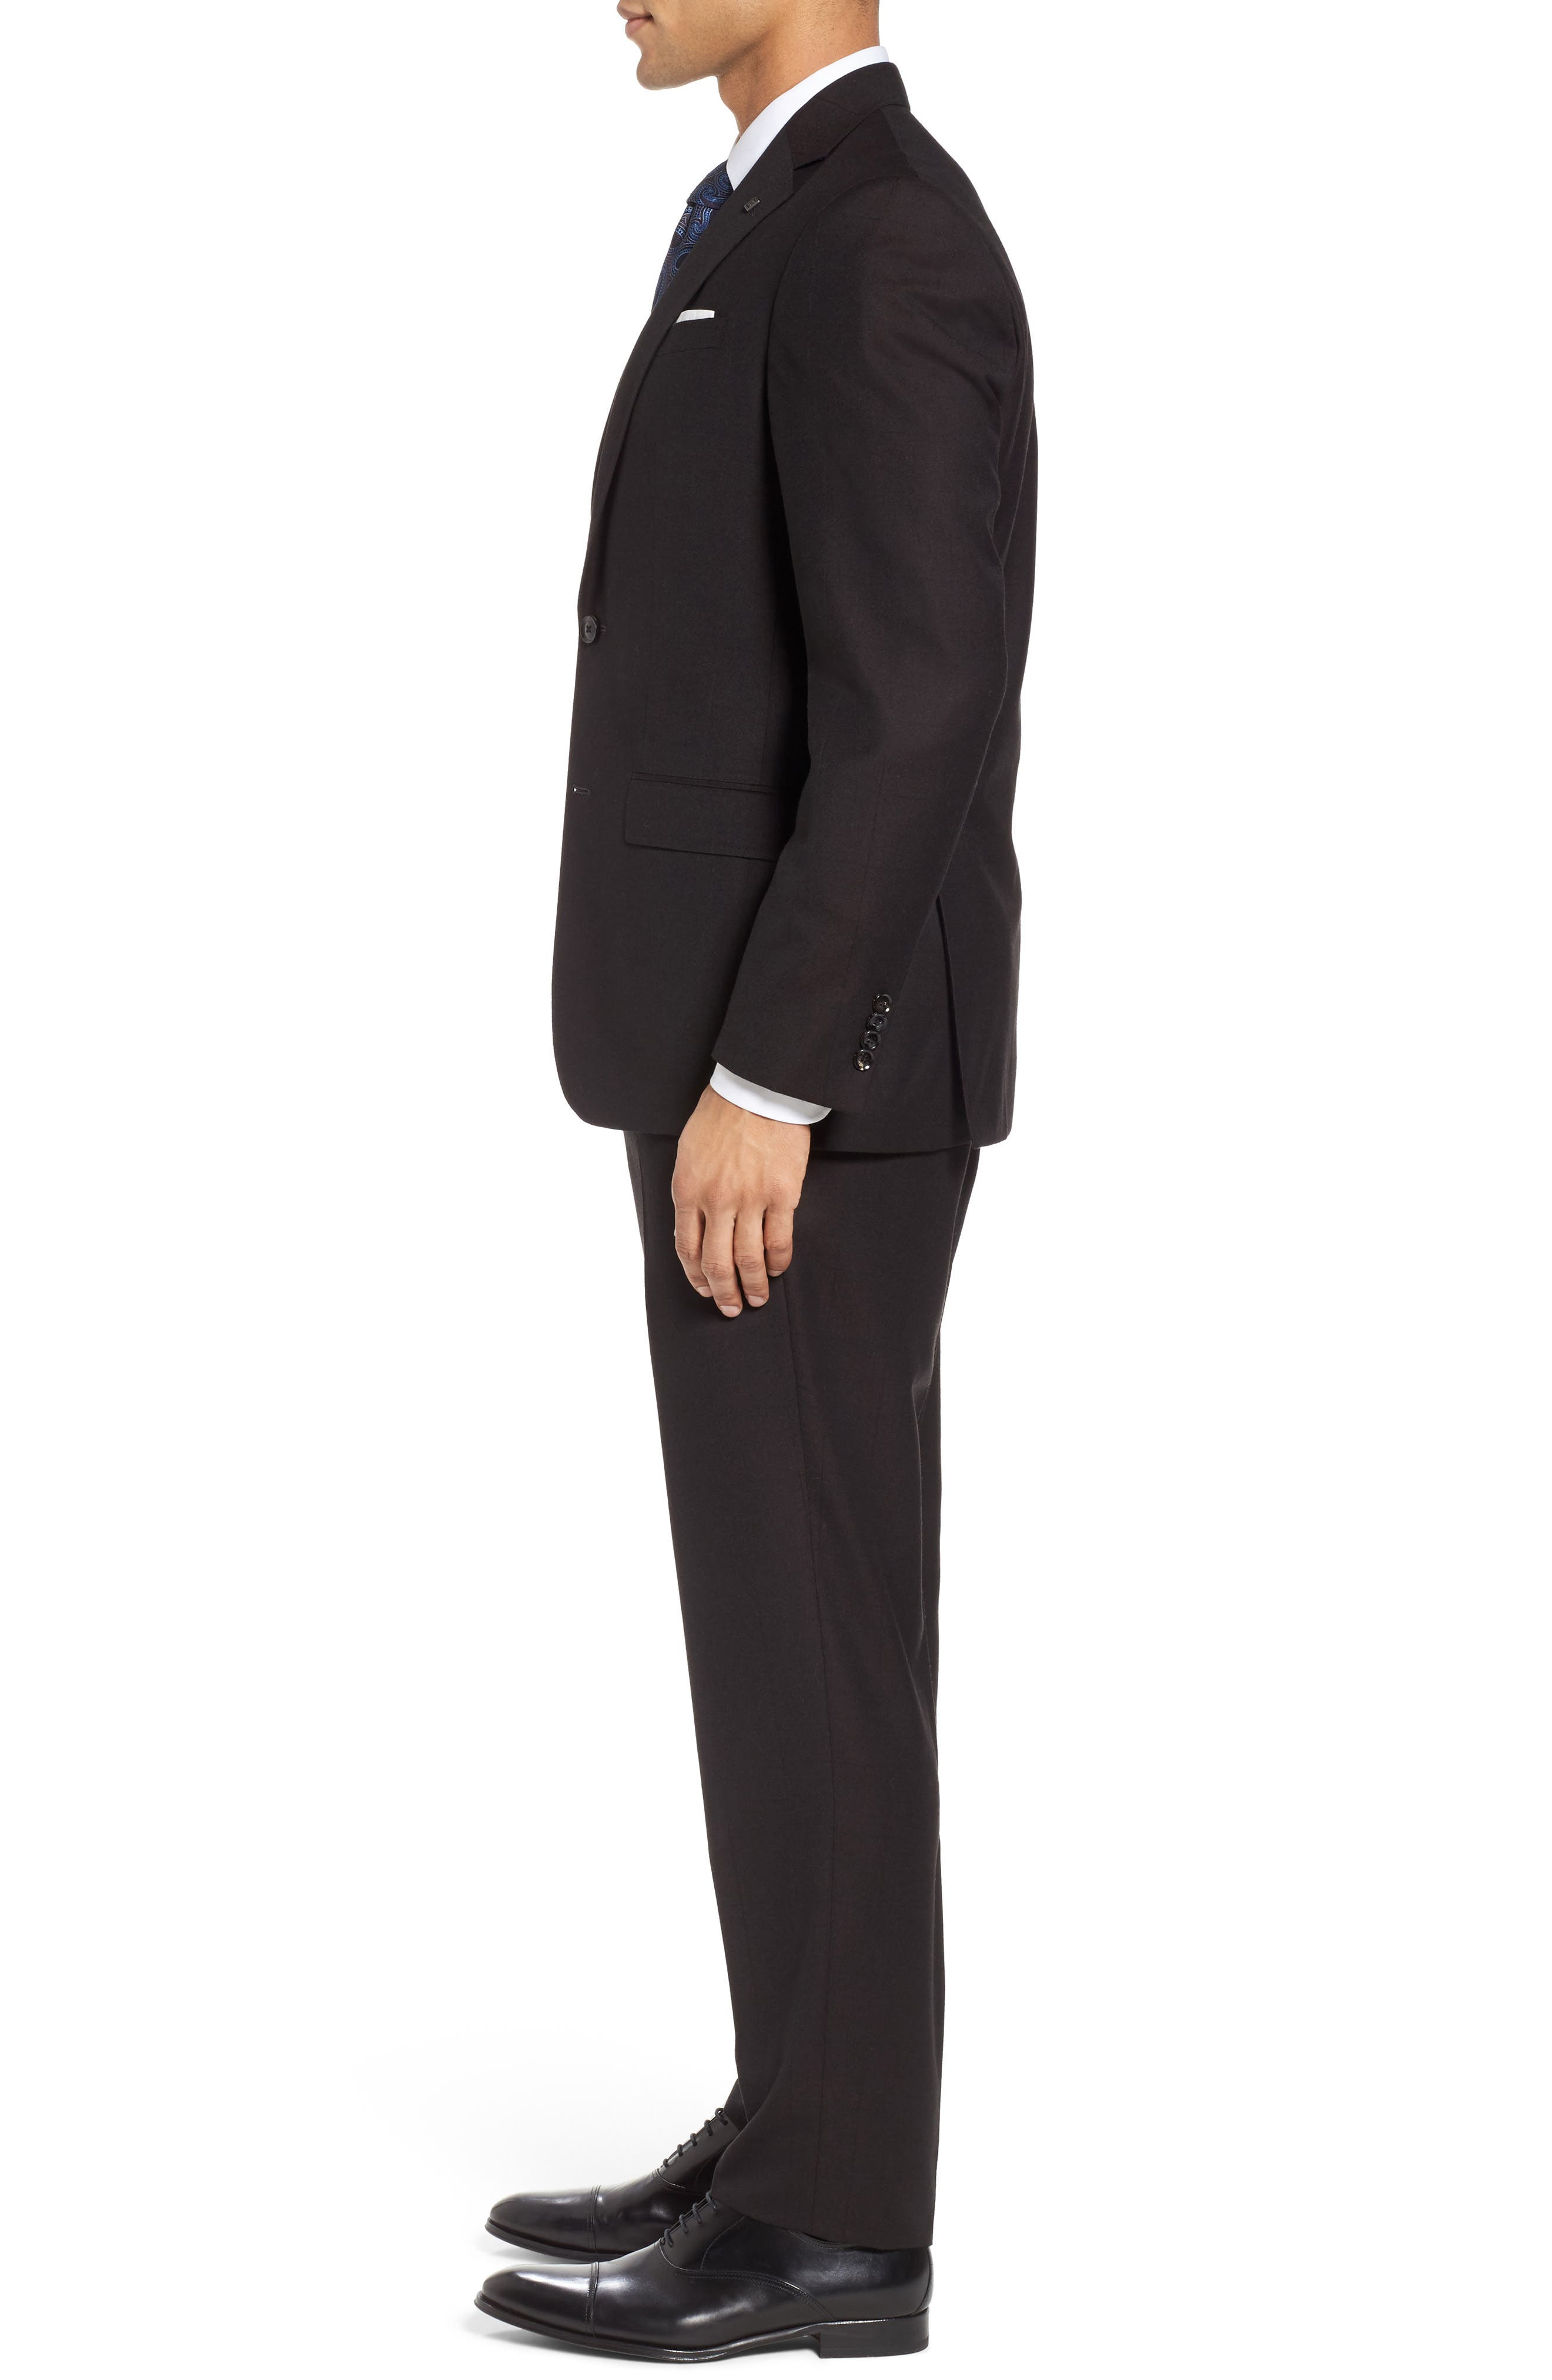 Jay Trim Fit Solid Wool Suit,                             Alternate thumbnail 3, color,                             Brown